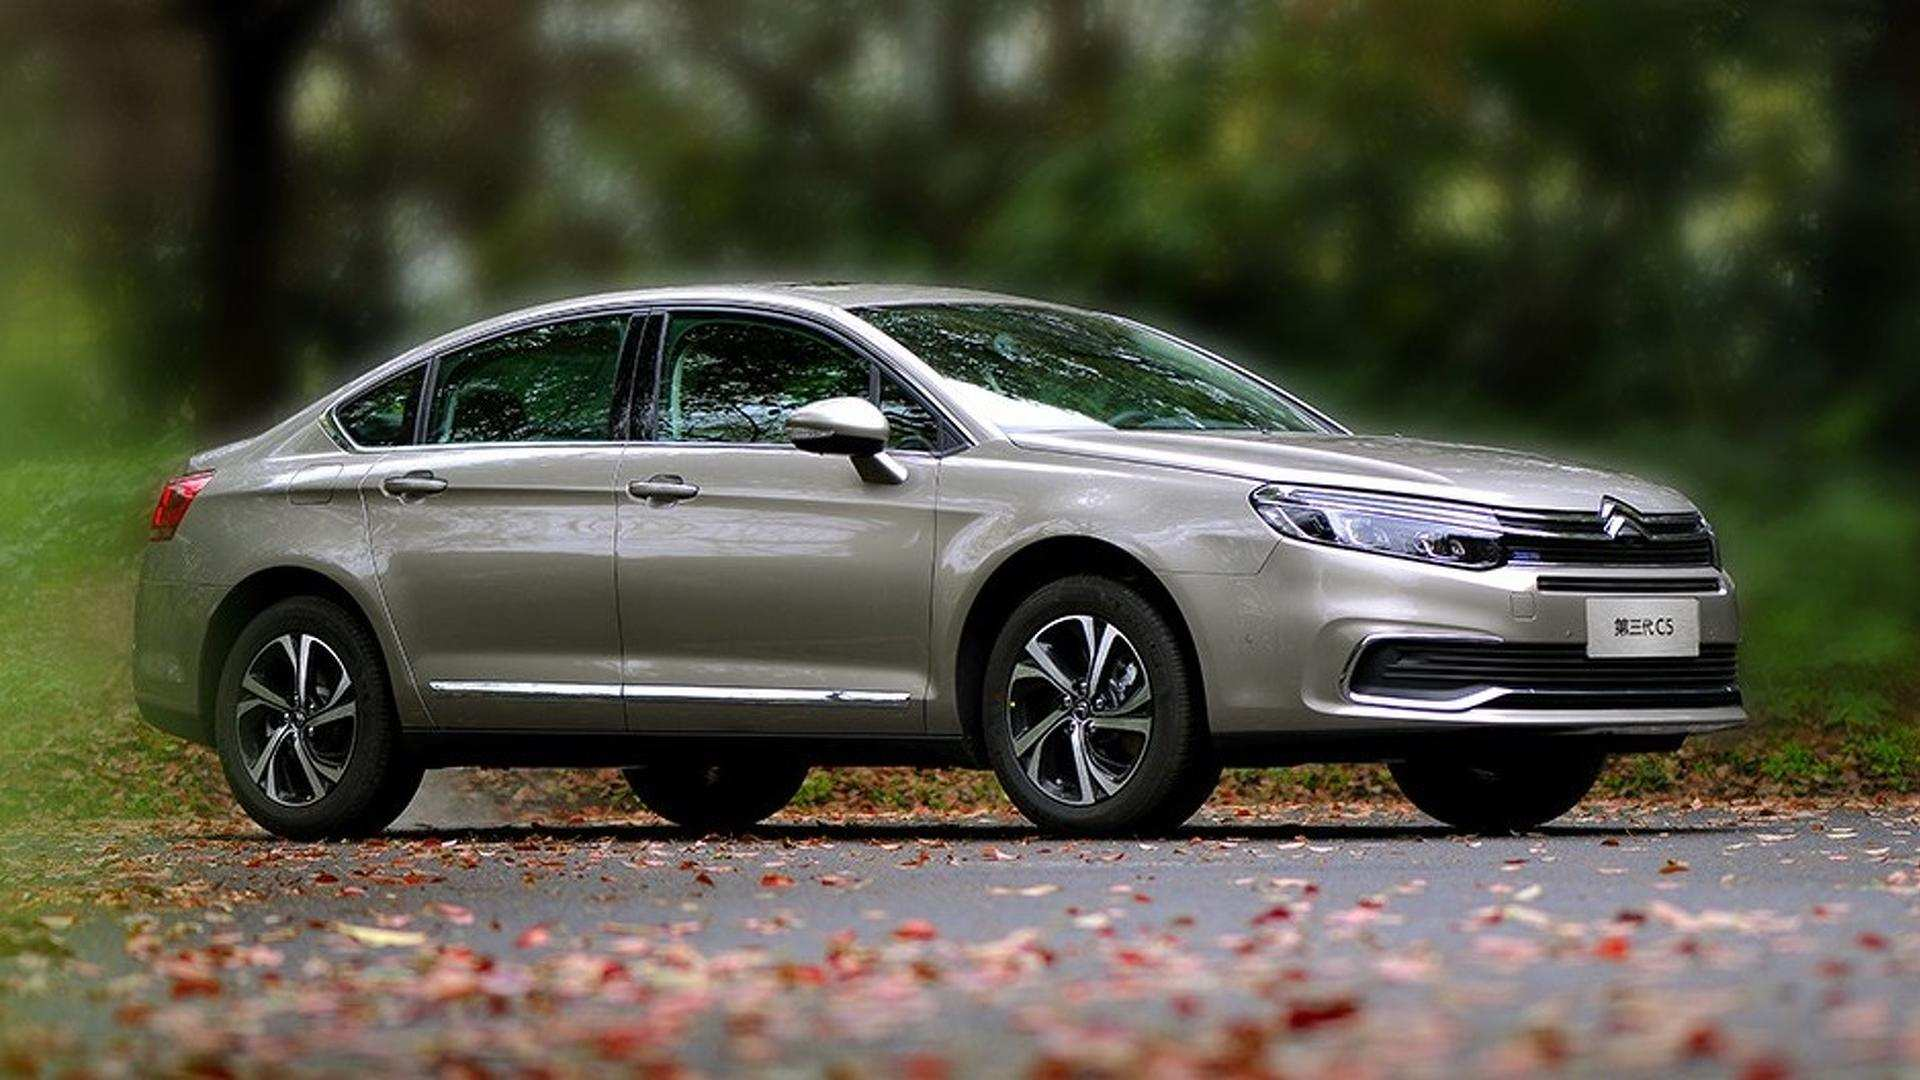 40 New 2020 Citroen C5 Price and Review for 2020 Citroen C5